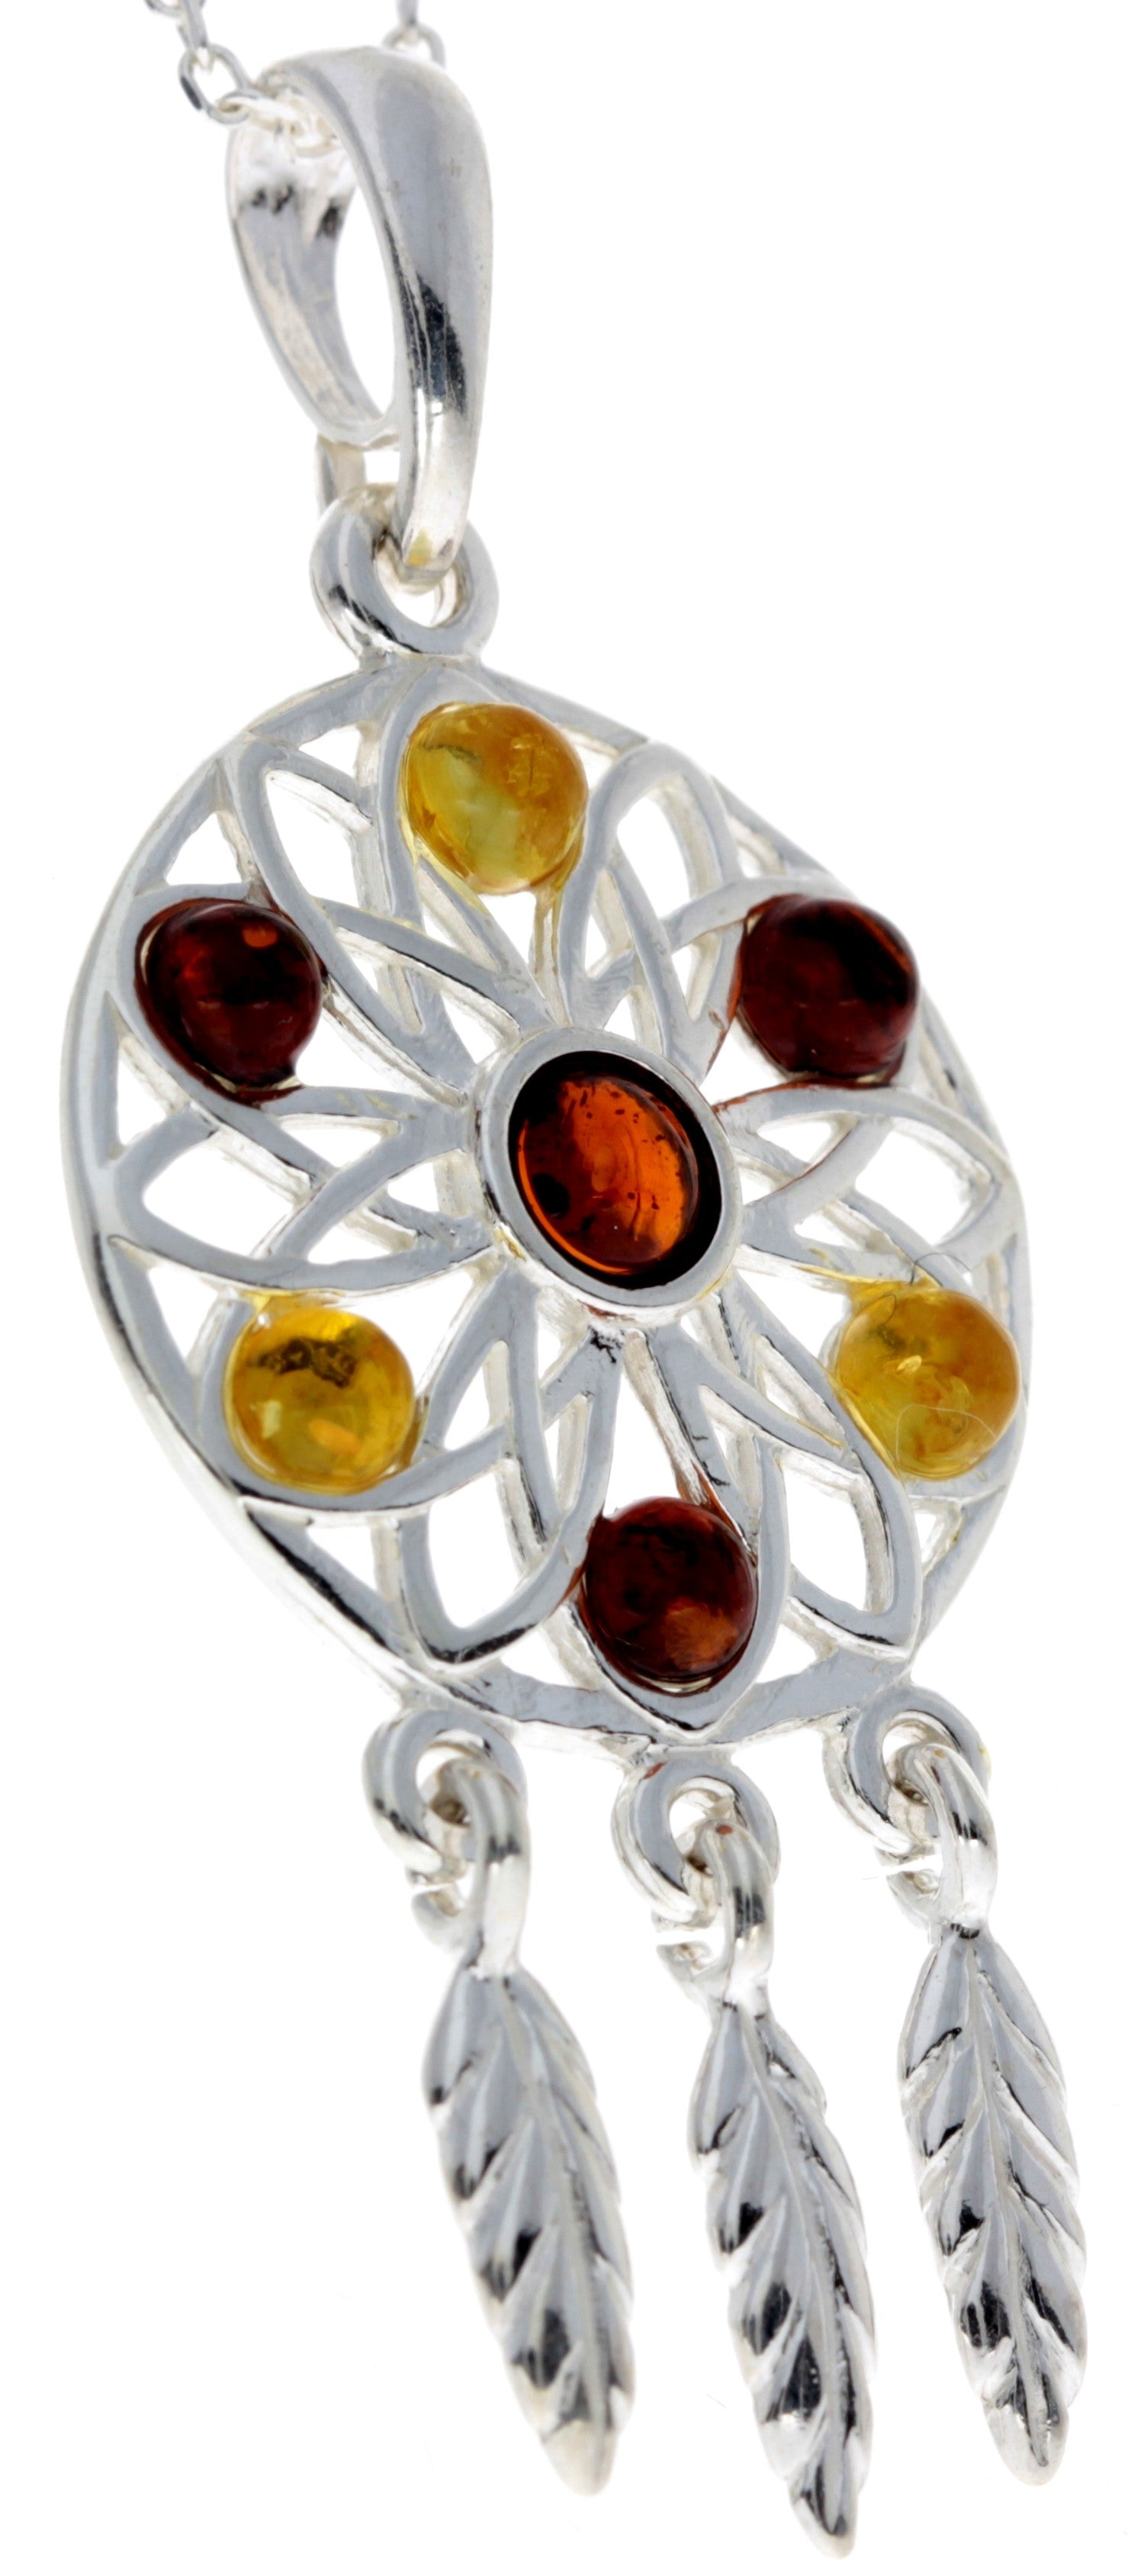 925 Sterling Silver & Baltic Amber Large Dream catcher Pendant - GL368S